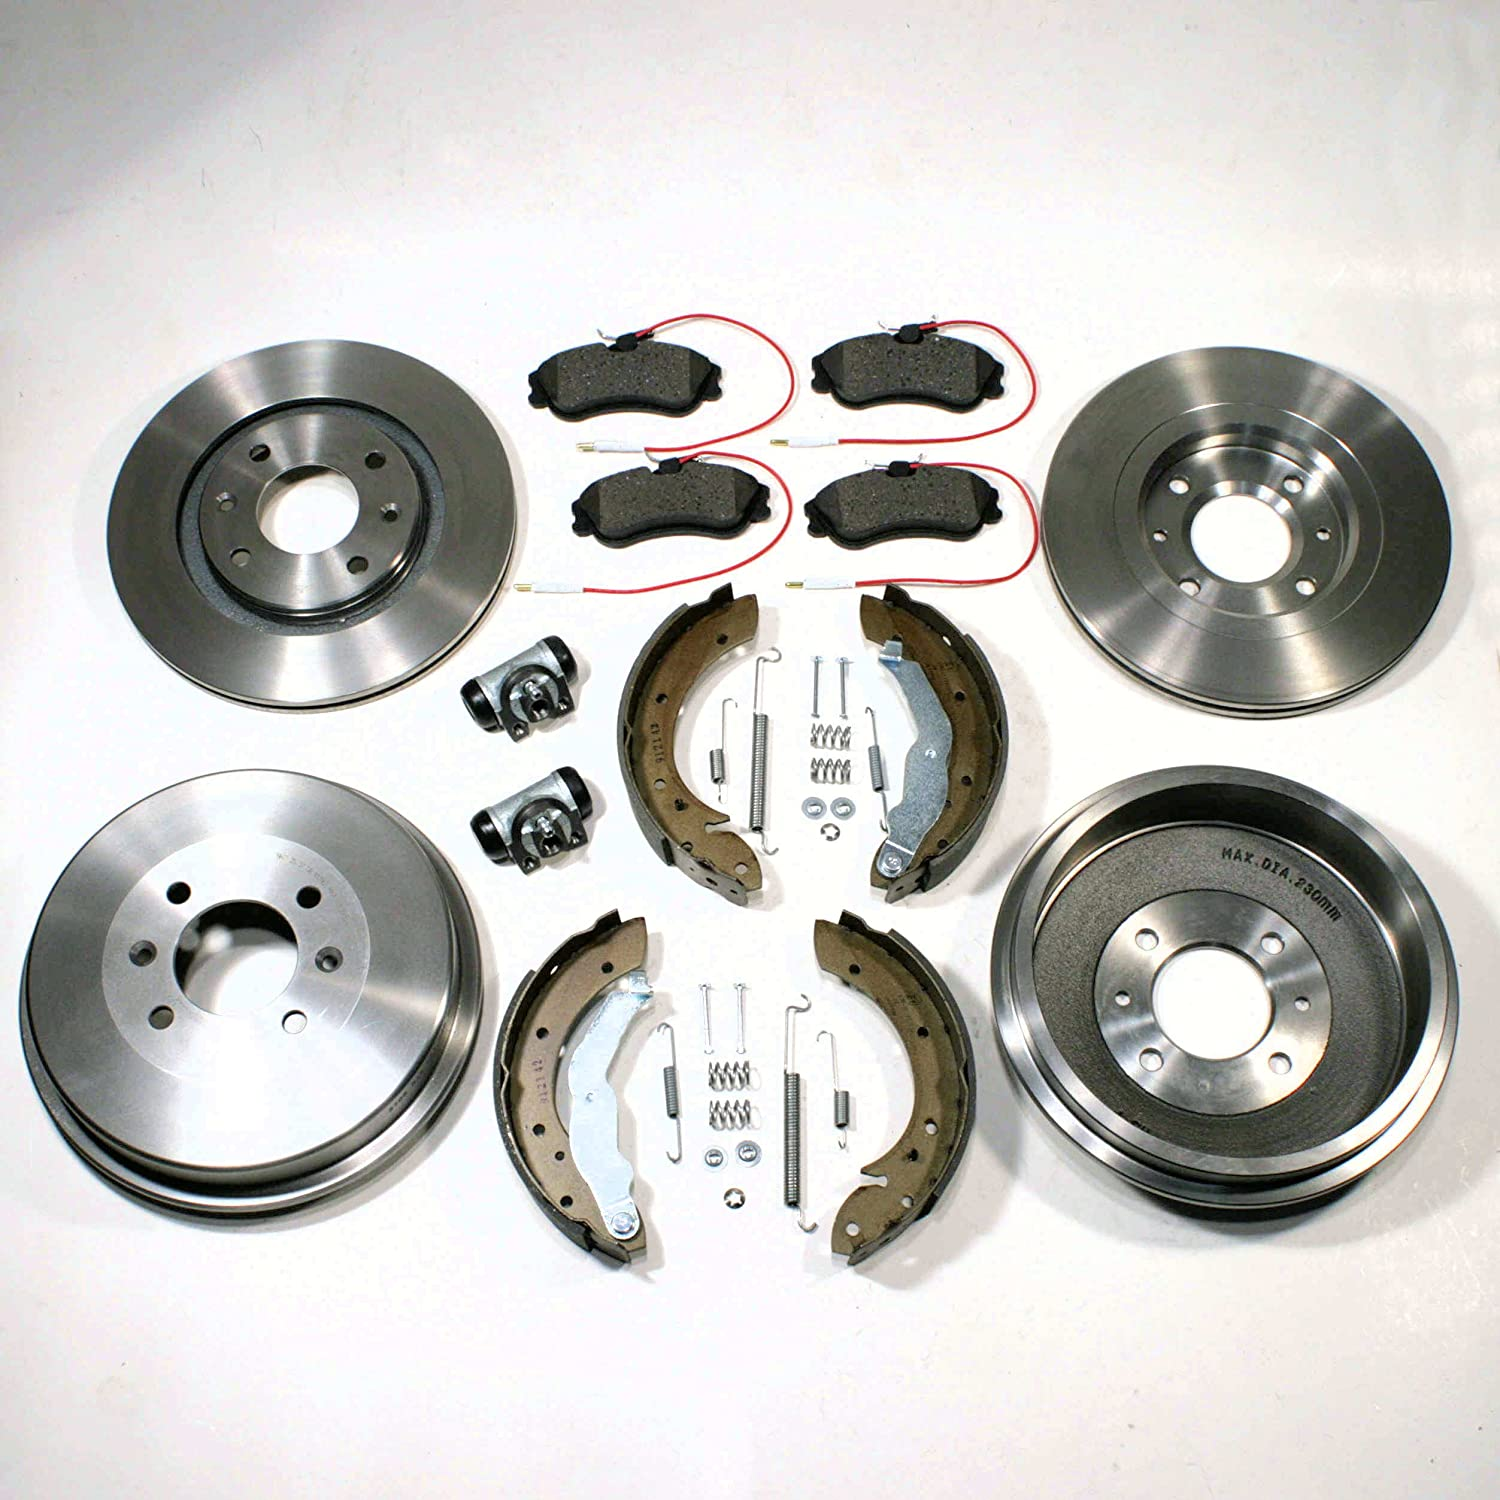 CITROEN C1 1.0 VTR 2005-2016 FRONT 2 BRAKE DISCS AND PADS SET BRAND NEW KIT